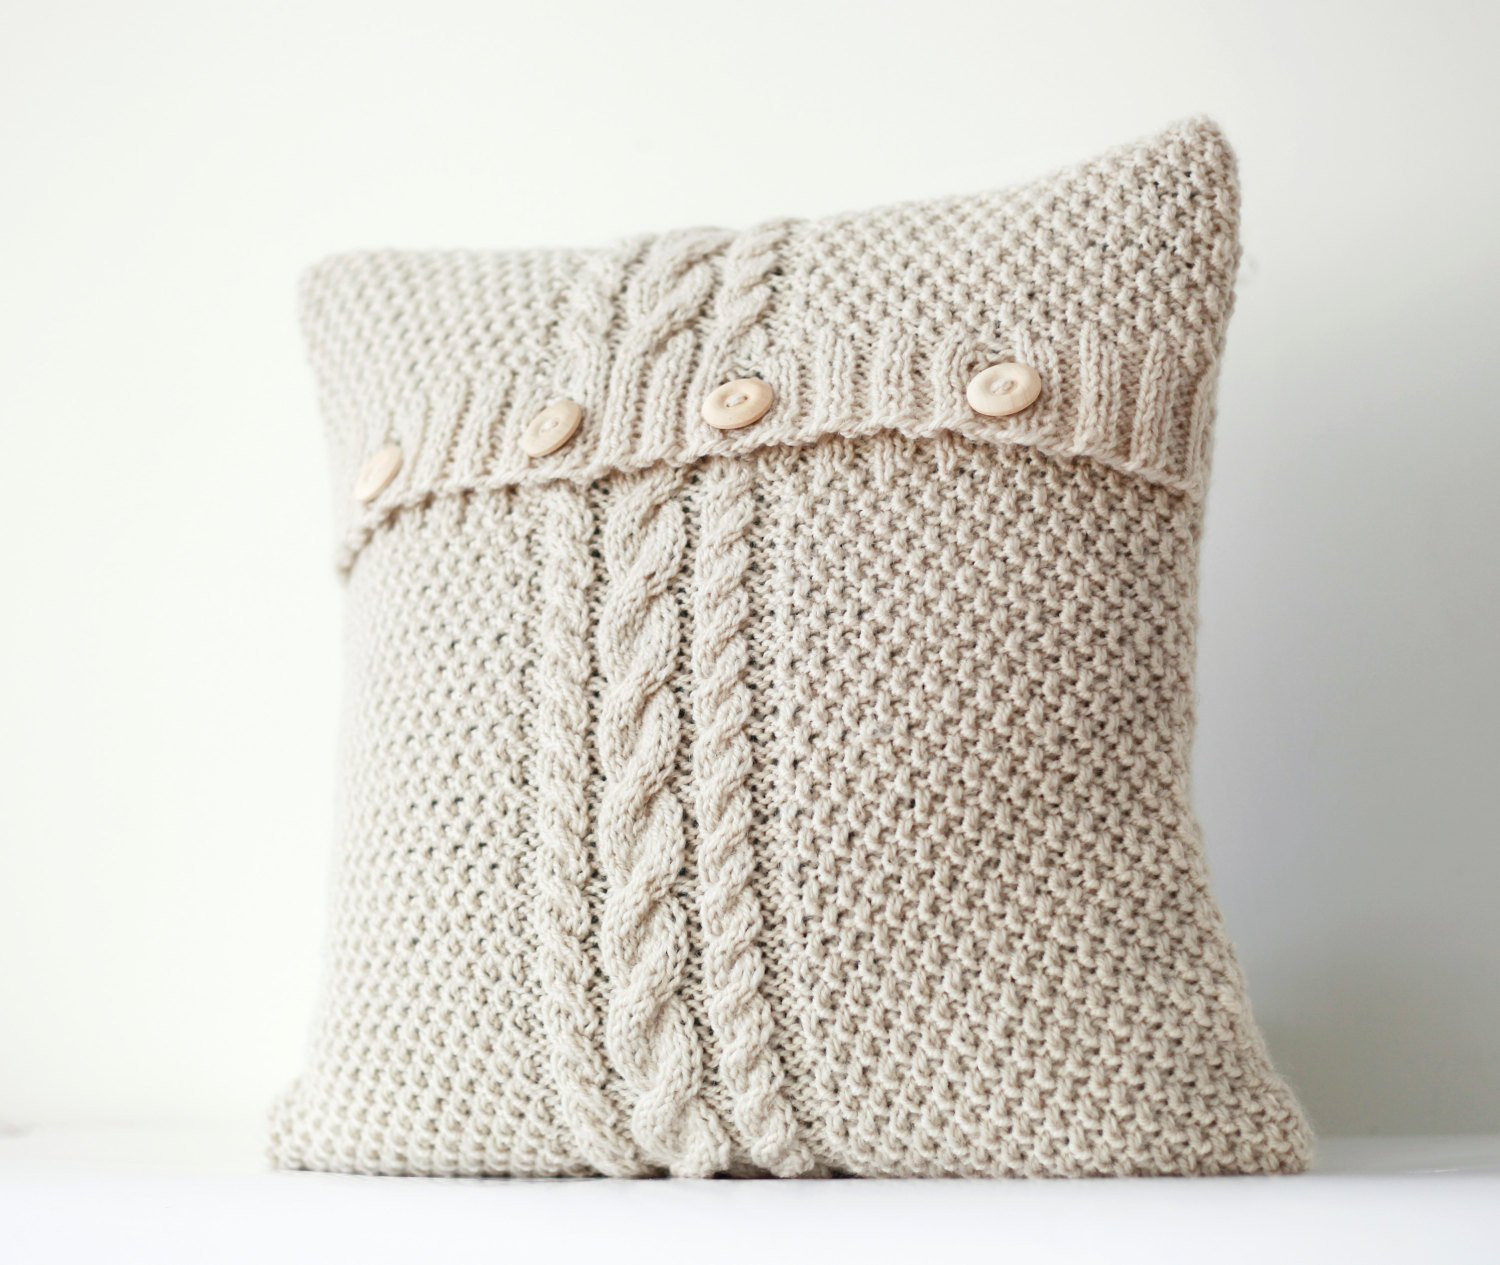 Knit Pillow Awesome Cable Hand Knitted Pillow Cover Ivory Decorative Pillows Of Charming 46 Pics Knit Pillow